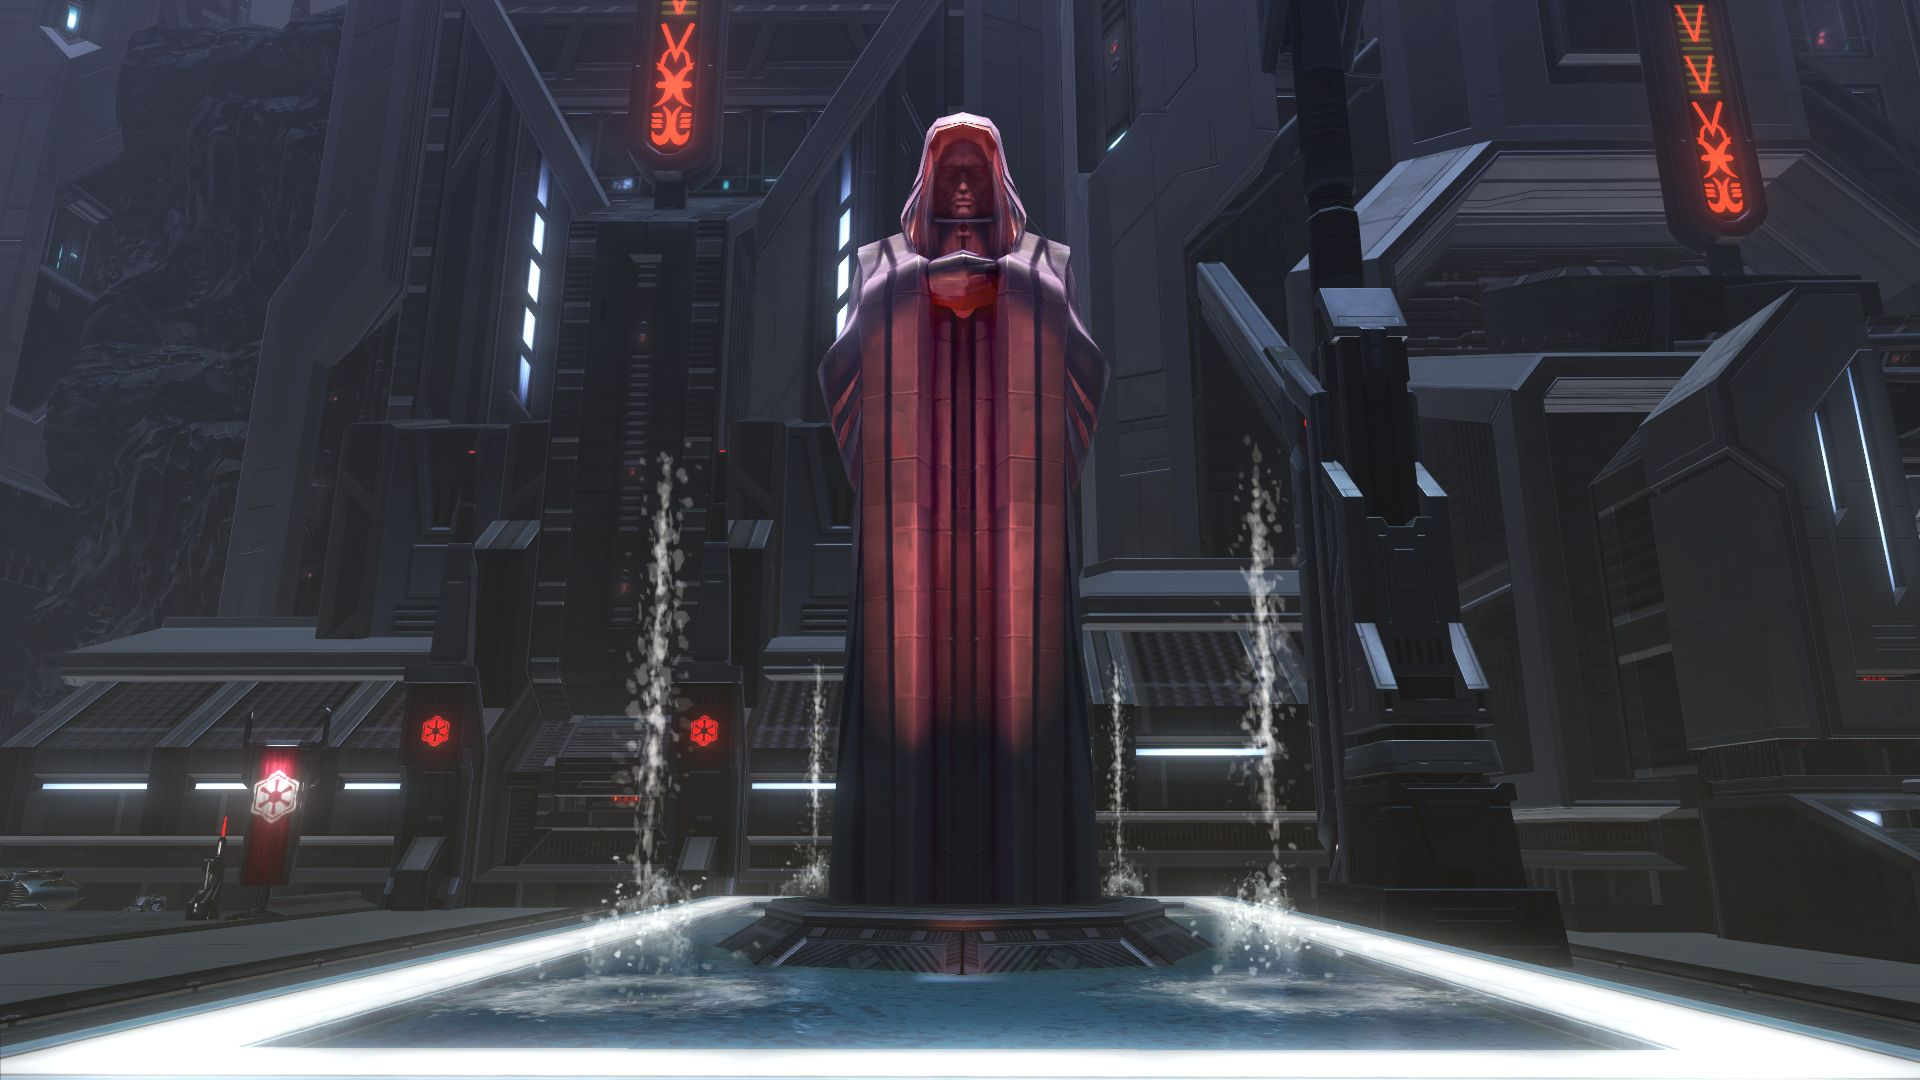 SWTOR Ziost Story Finale Coming May 4th